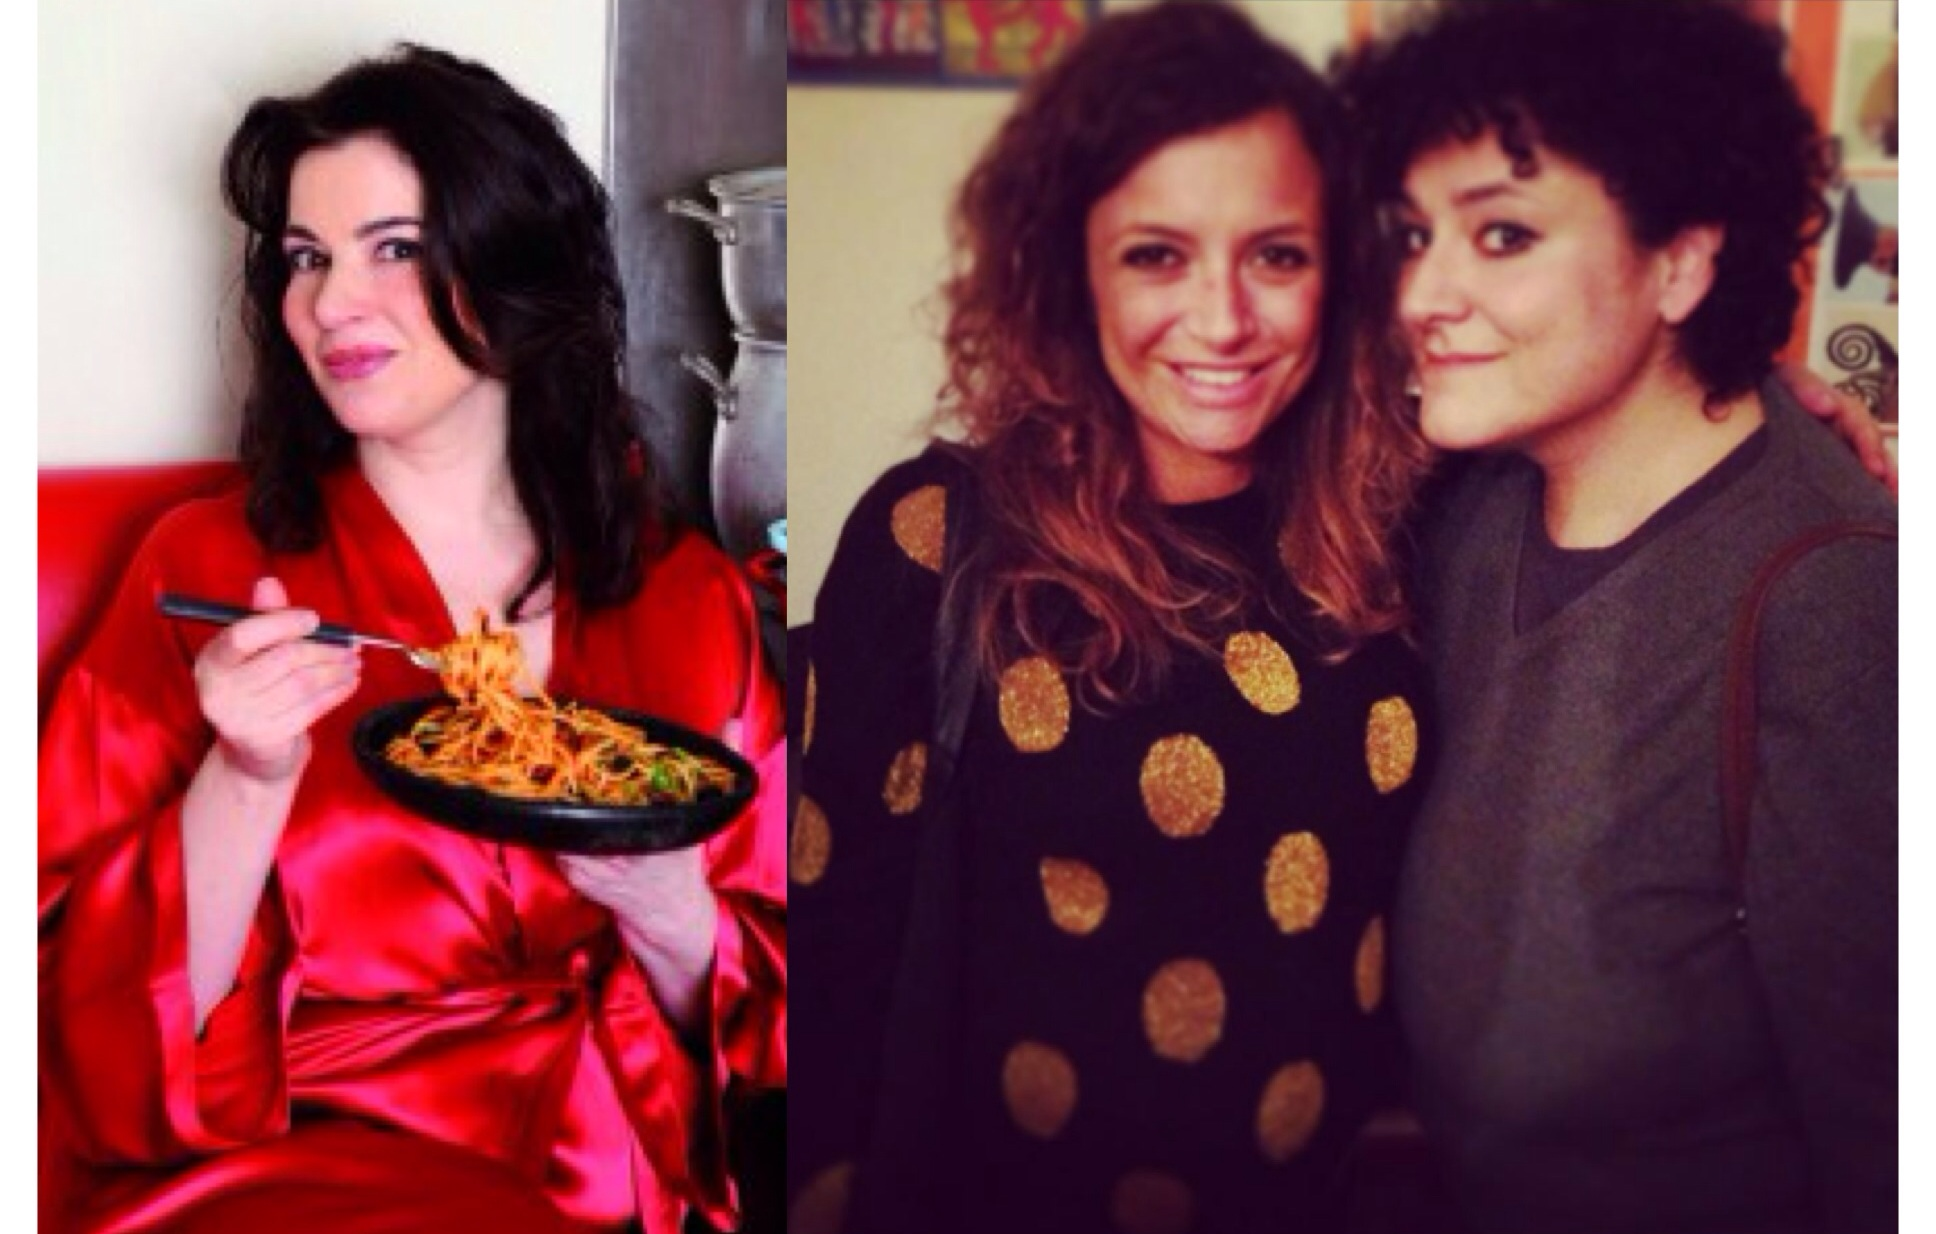 Me between my 2 favourite tv chefs Nigella Lawson and Mariatolmina Ciriello